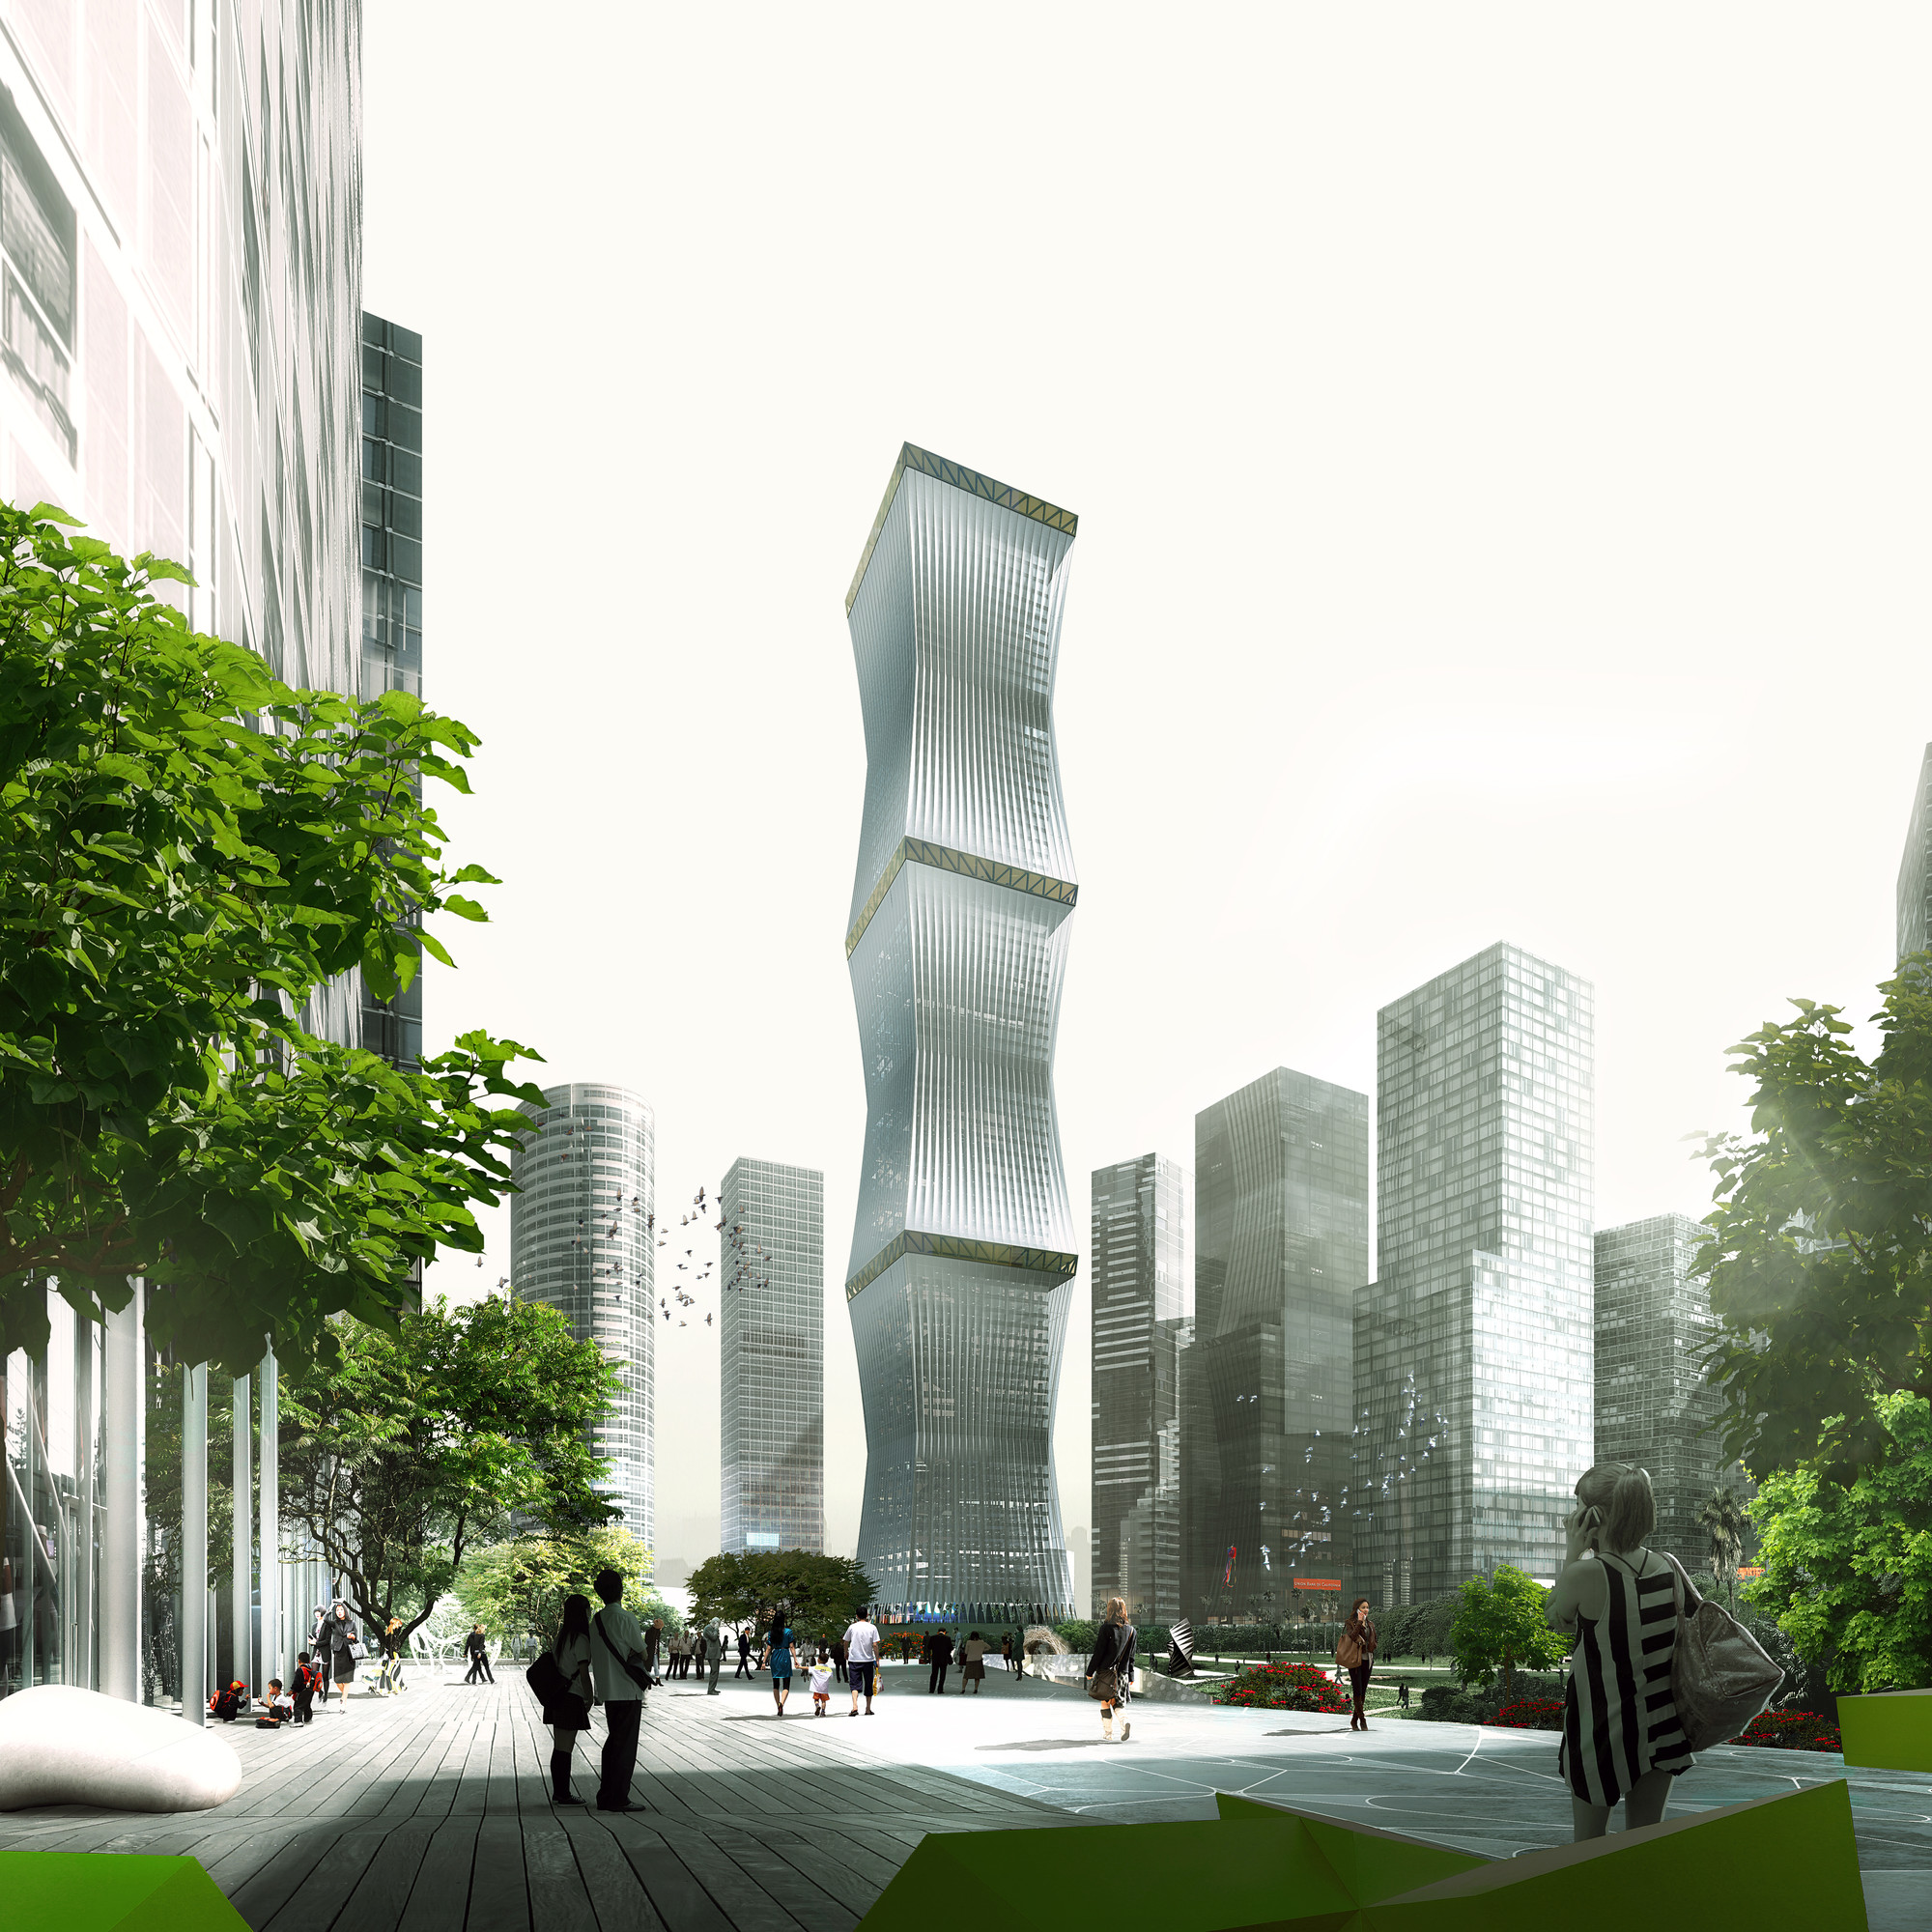 REX Proposes Retractable Facade for 'Equator Tower' in Malaysia, View from Northwest Gateway. Image © Luxigon